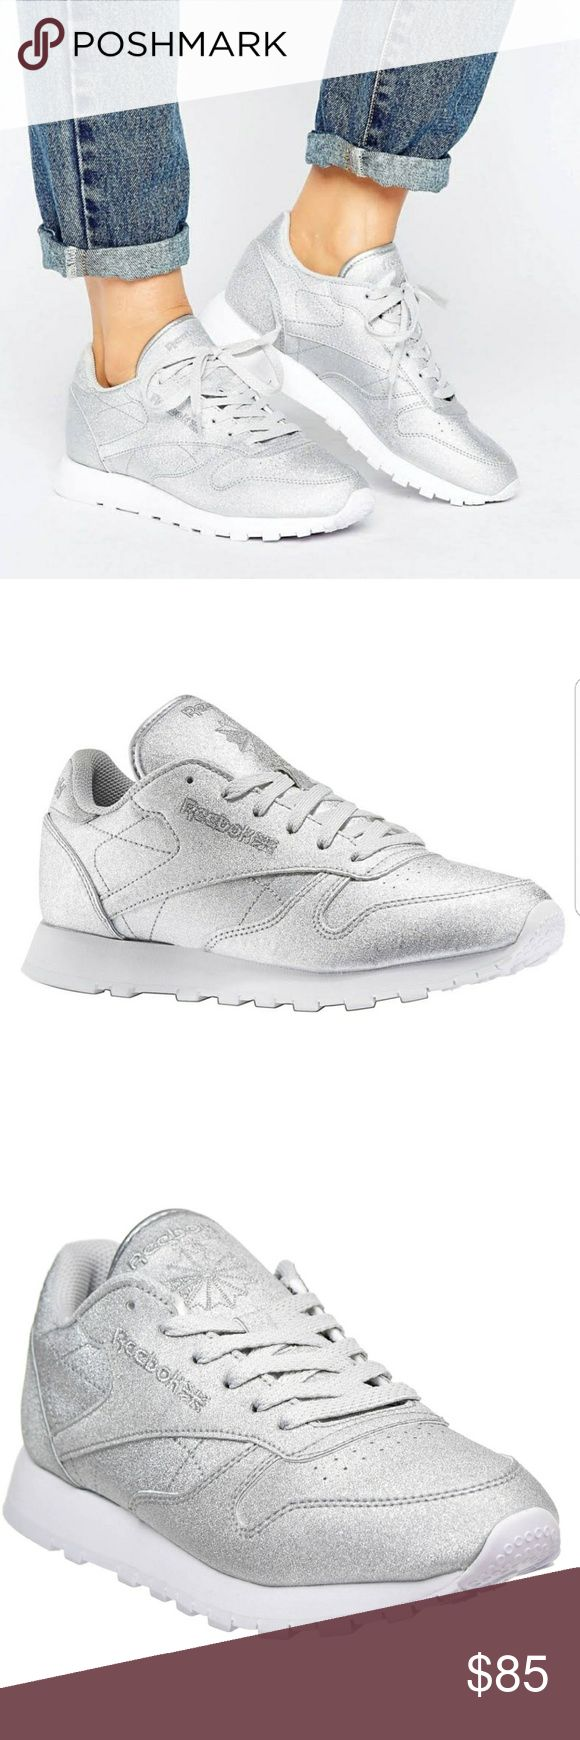 NEW REEBOK GLITTER CLASSIC LEATHER SNEAKERS Brand New in box Reebok Classic Silver Glitter Sneakers.   Women's Size 7.5 FAST SHIPPING!! Reebok Shoes Sneakers